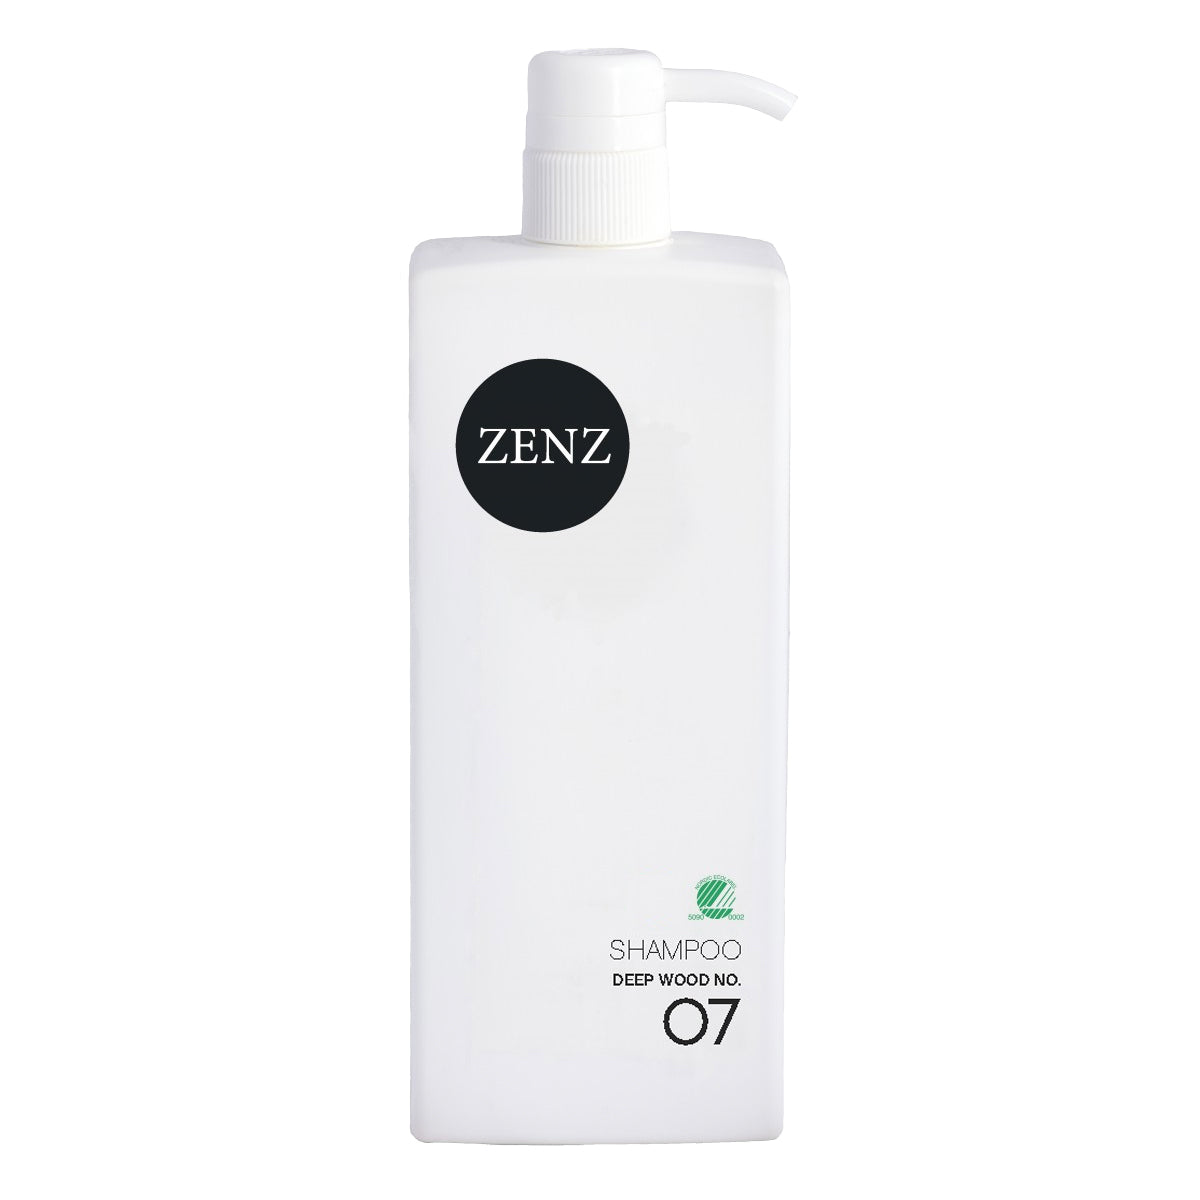 No.07 Deep Wood Shampoo for Dry/Damaged Hair (Scent of Sandalwood)